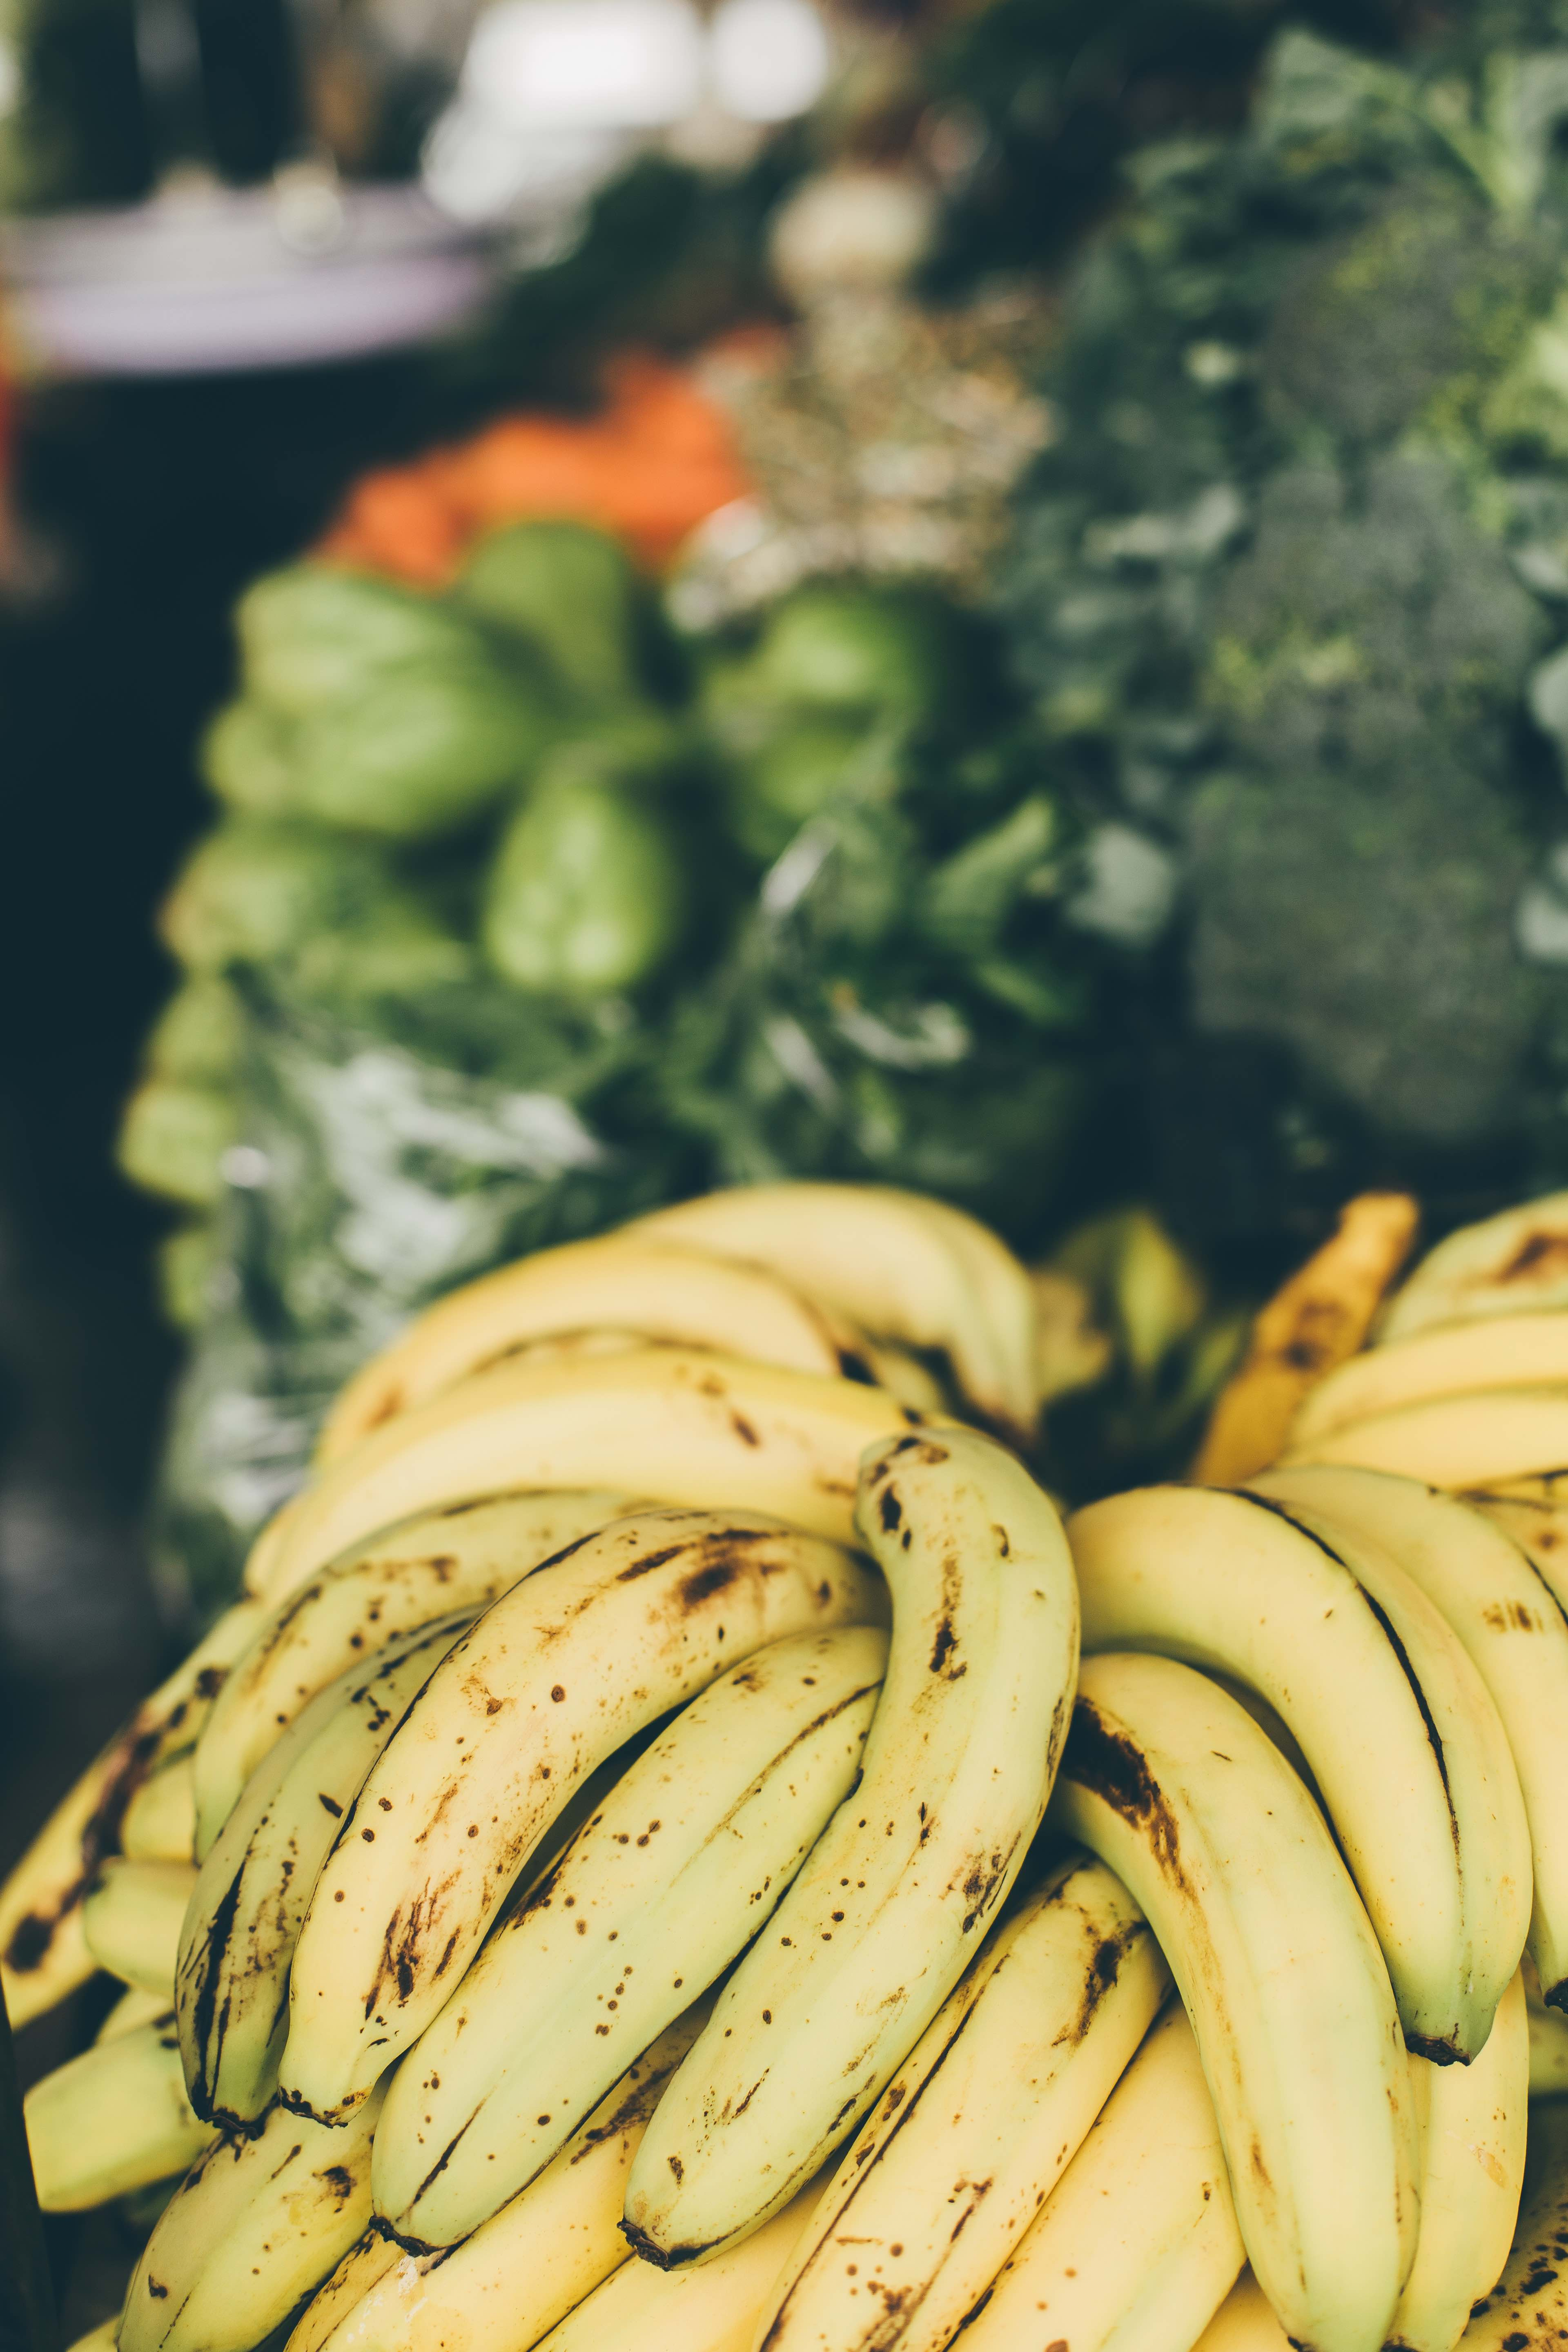 Plantains, a cousin to the banana, are a staple in the Panamanian diet.